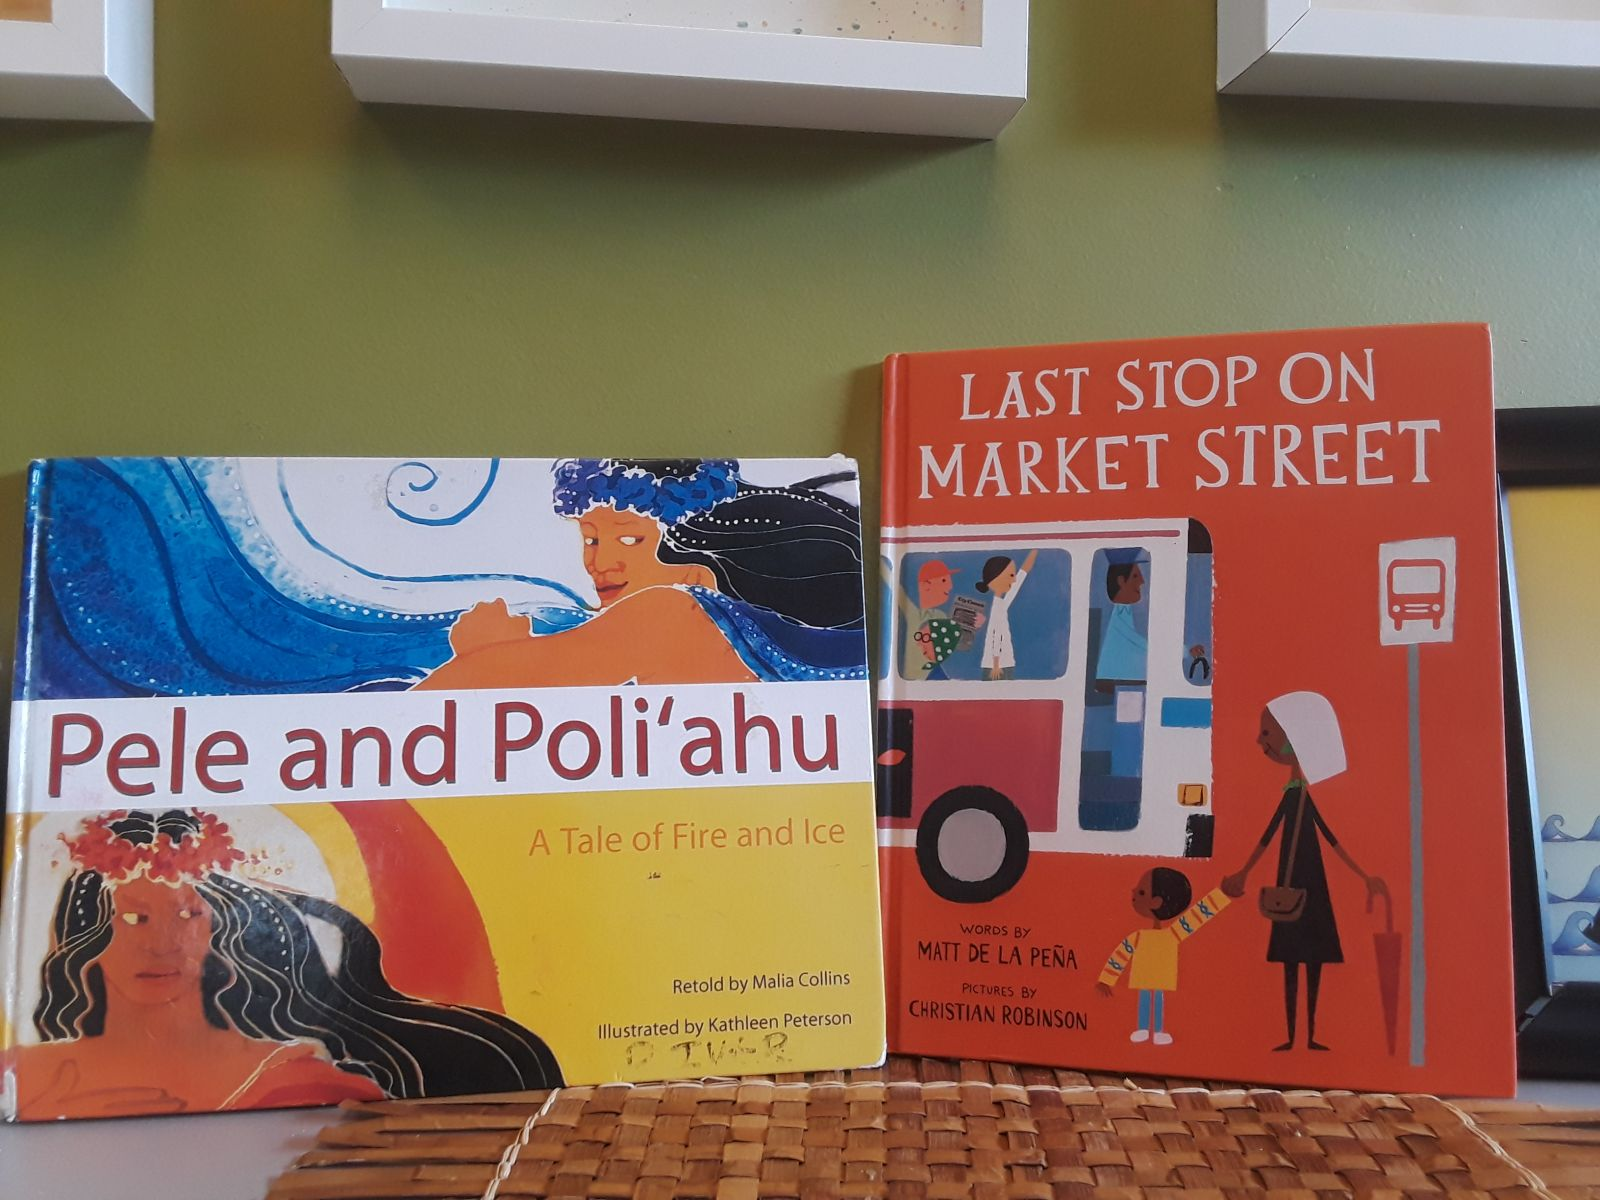 A picture of a book called Last Stop On Market Street